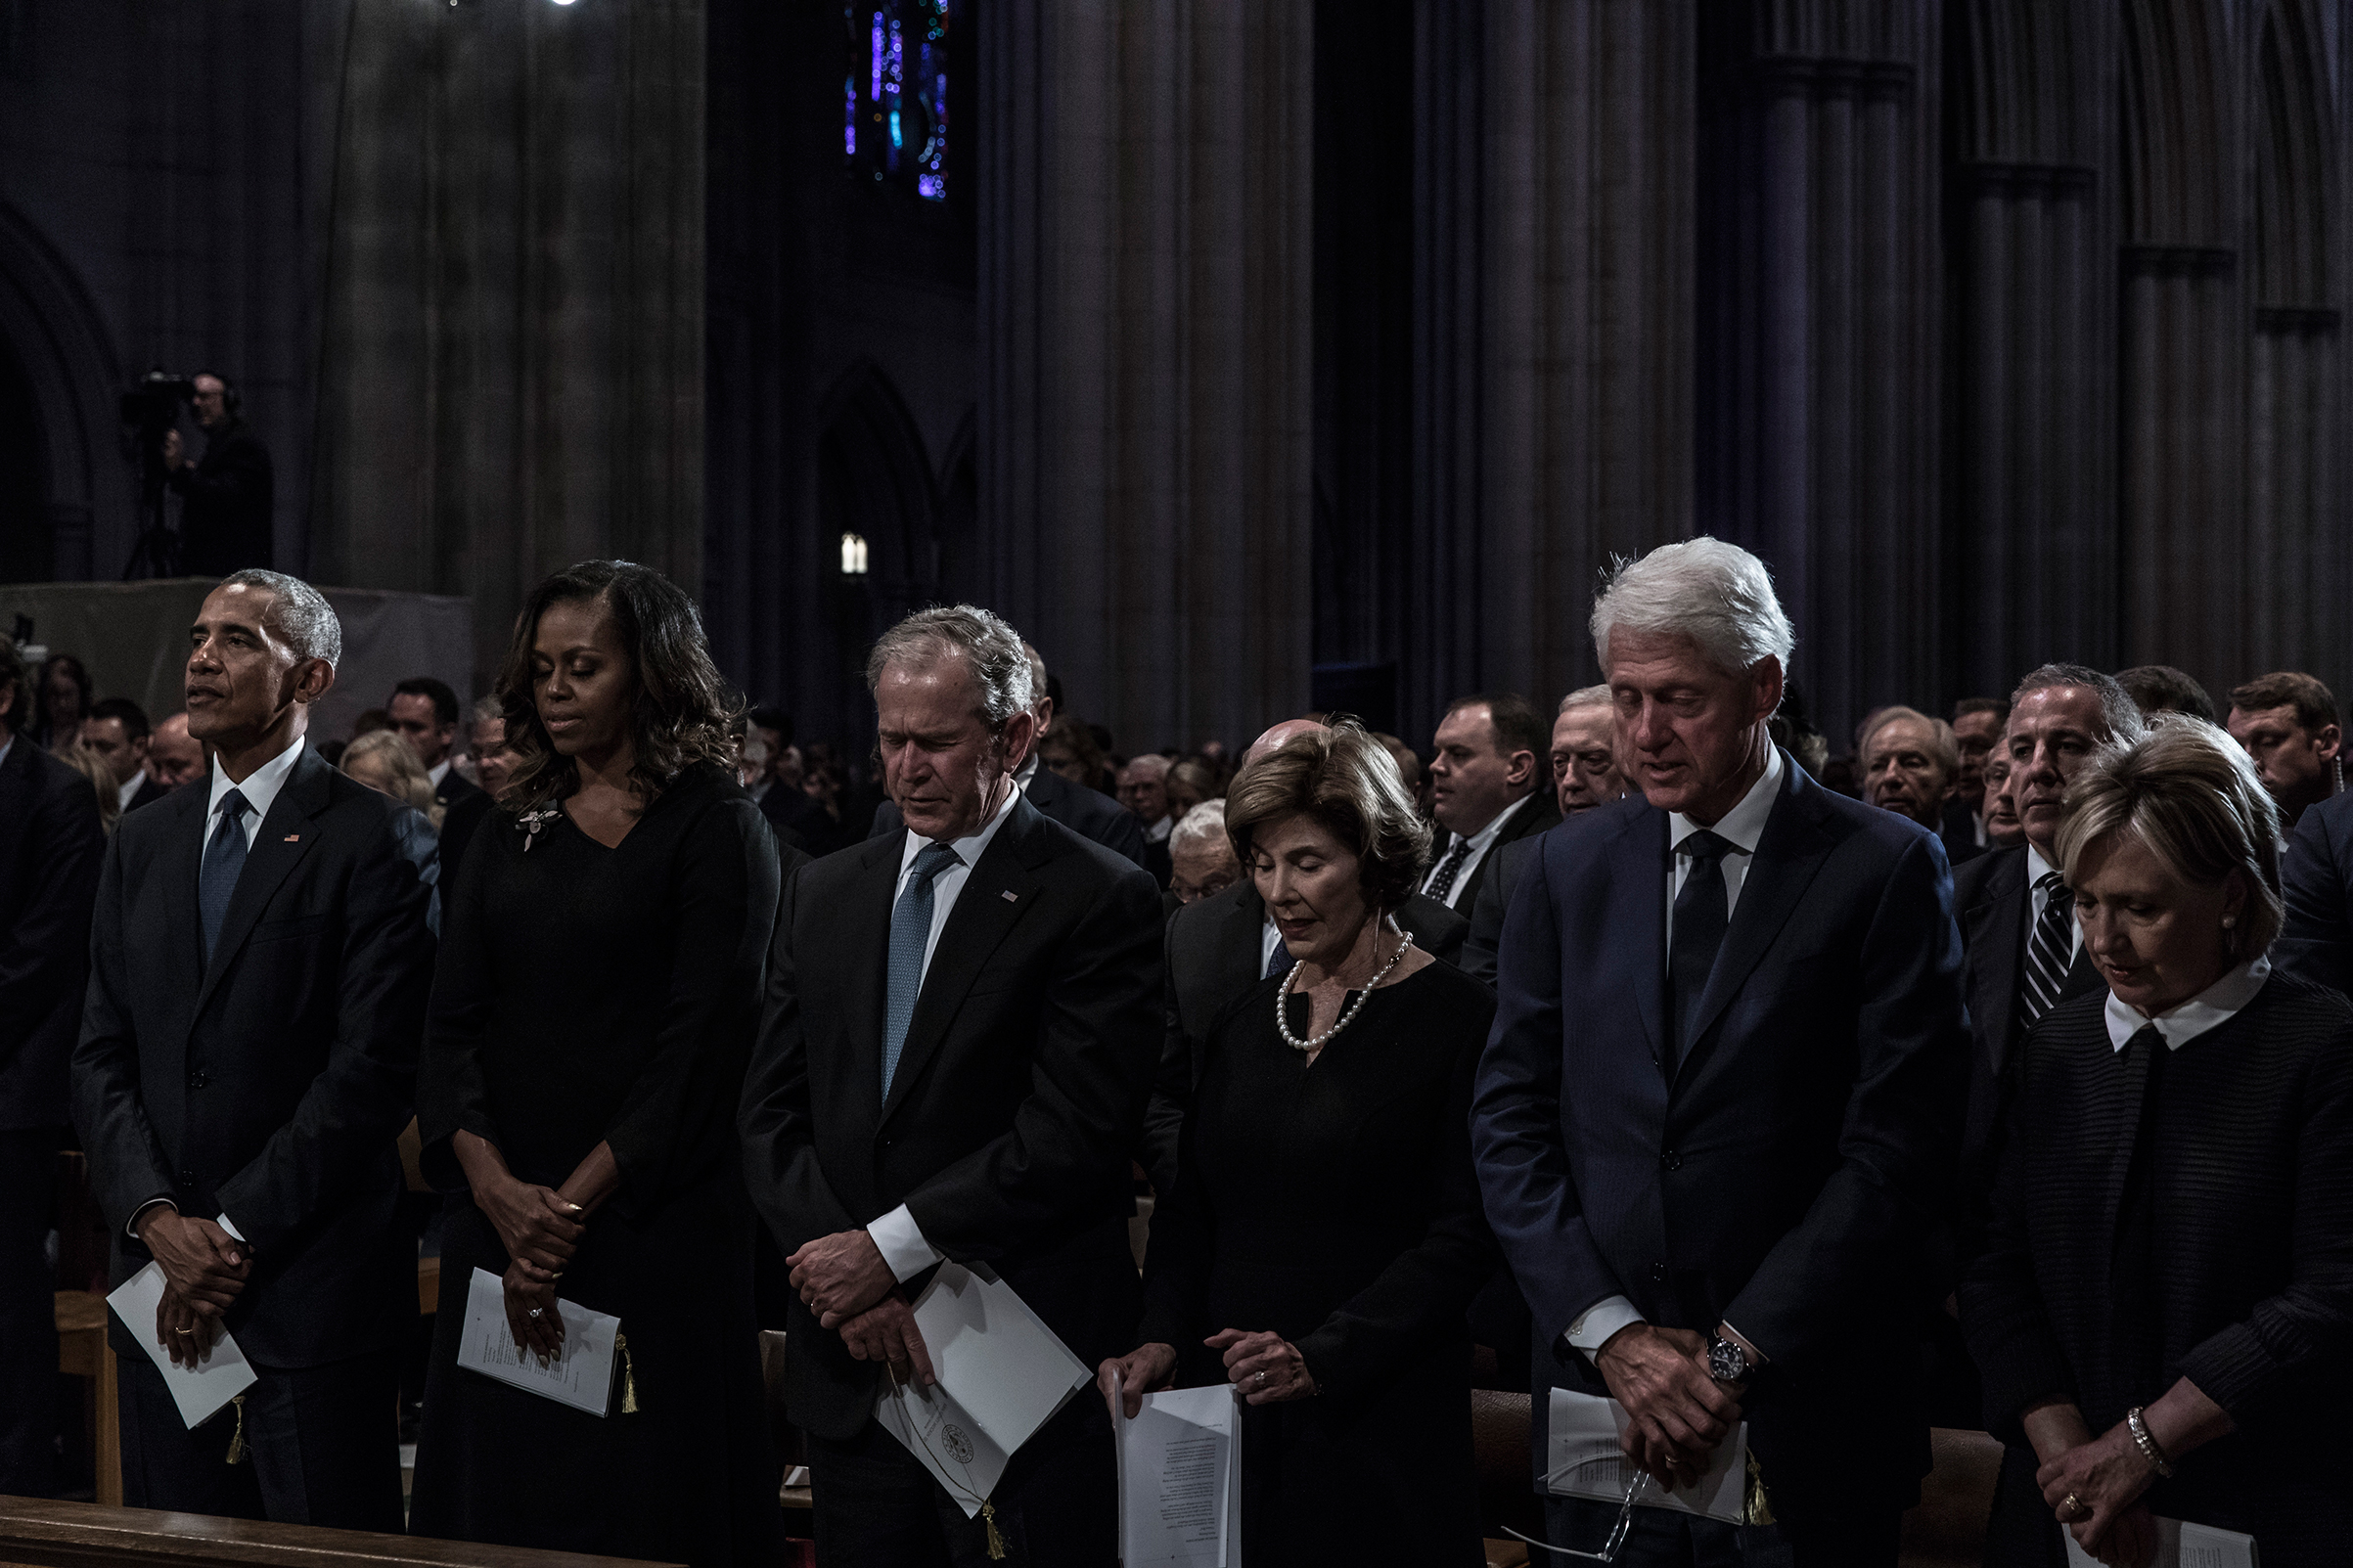 Former US President Barack Obama, Michelle Obama, former President George W. Bush, Laura Bush, former President Bill Clinton and and Hillary Clinton during a memorial service for Senator John McCain at the Washington National Cathedral on September 1, 2018.